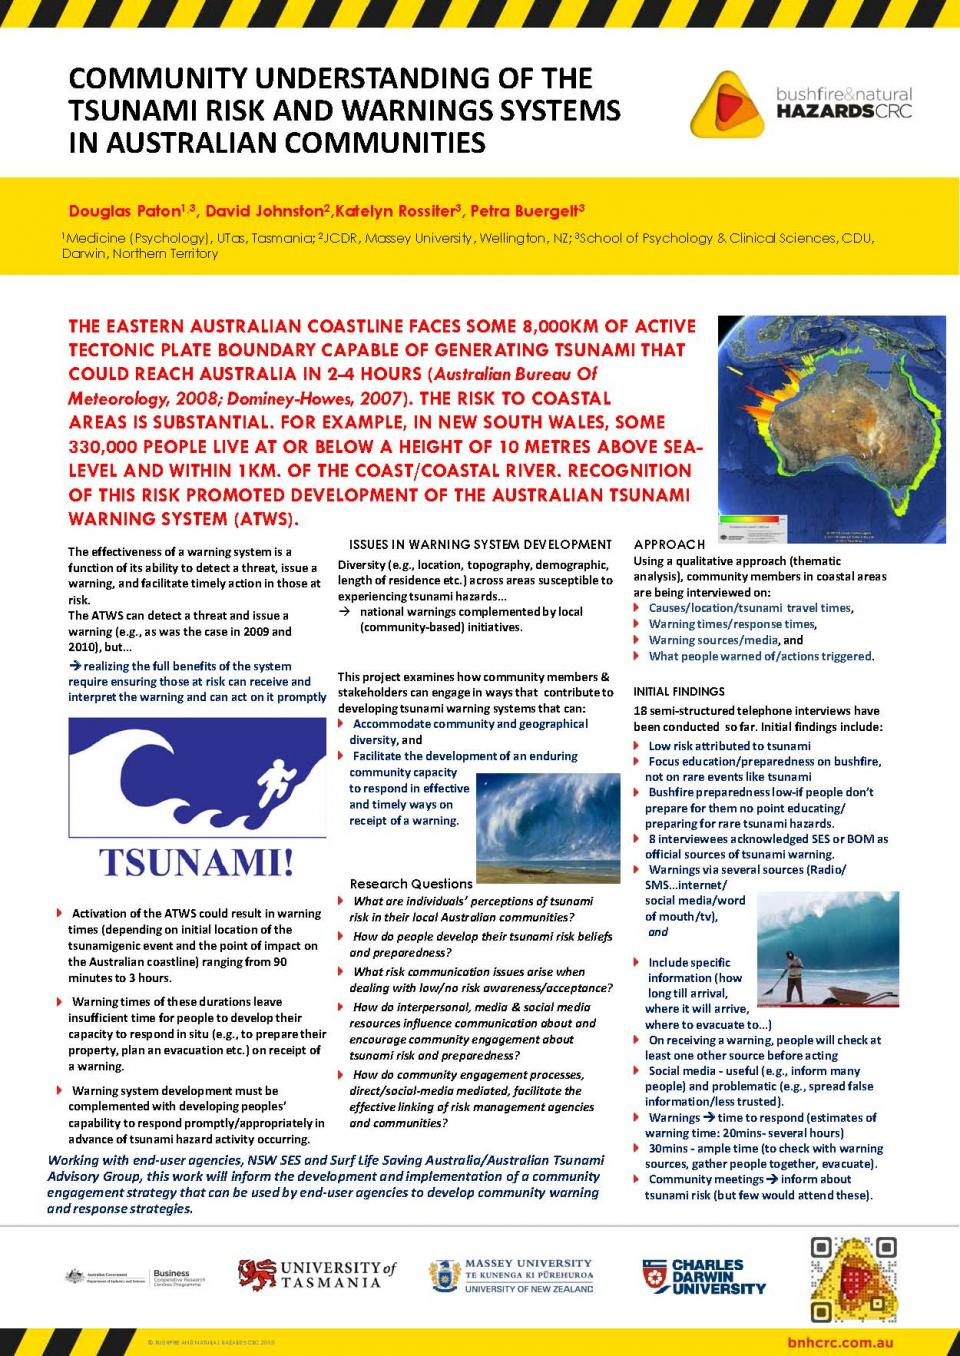 Community Understanding of the Tsunami Risk and Warning Systems in Australian Communities